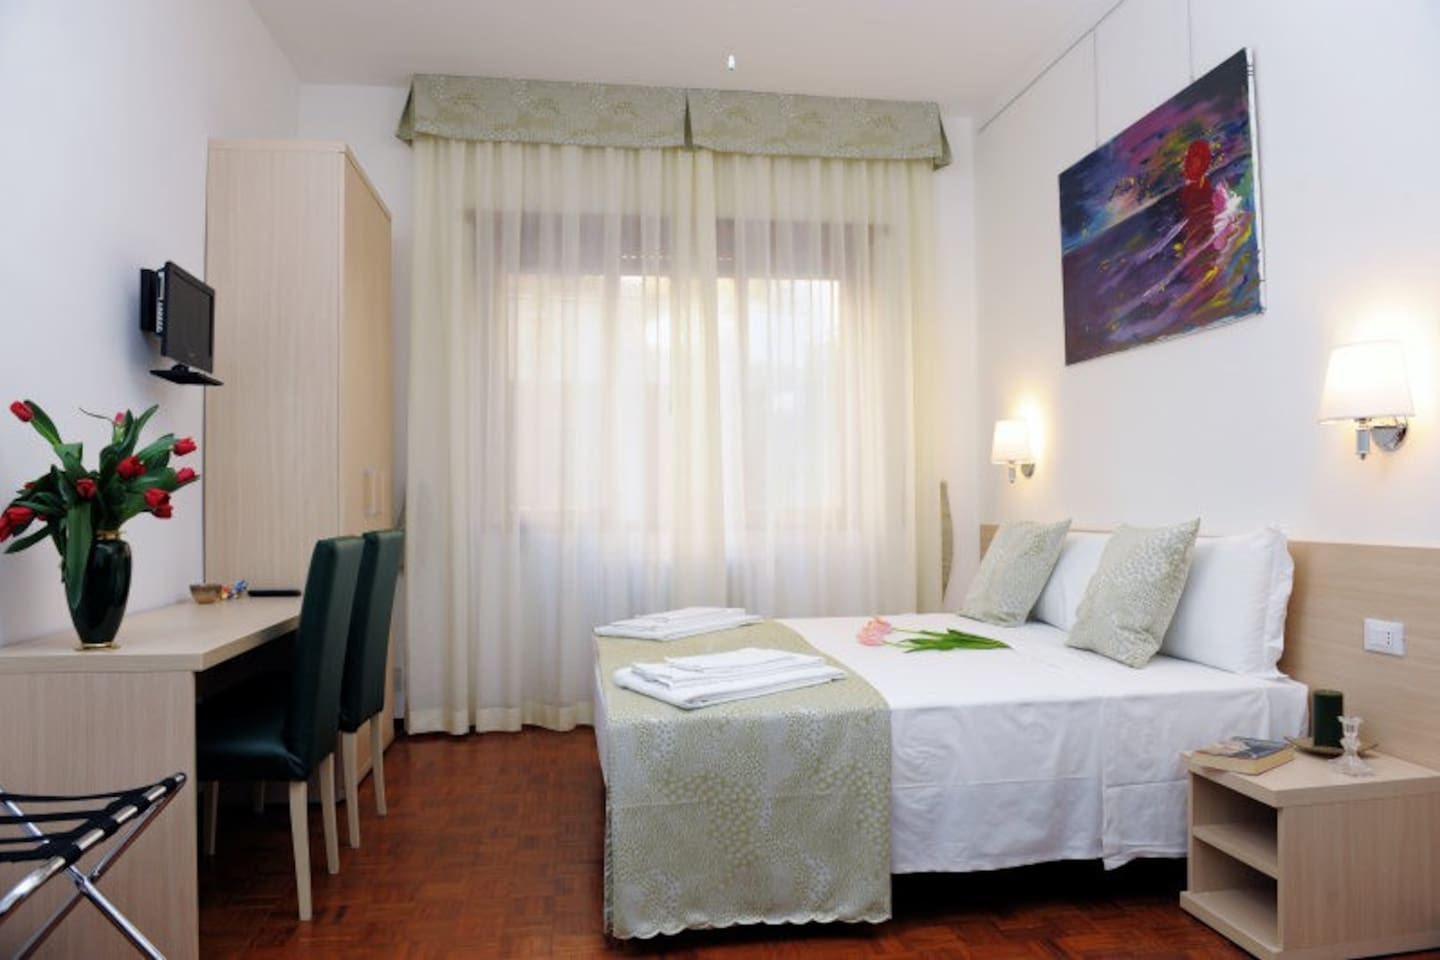 camera per 4 persone - double room plus 2 beds